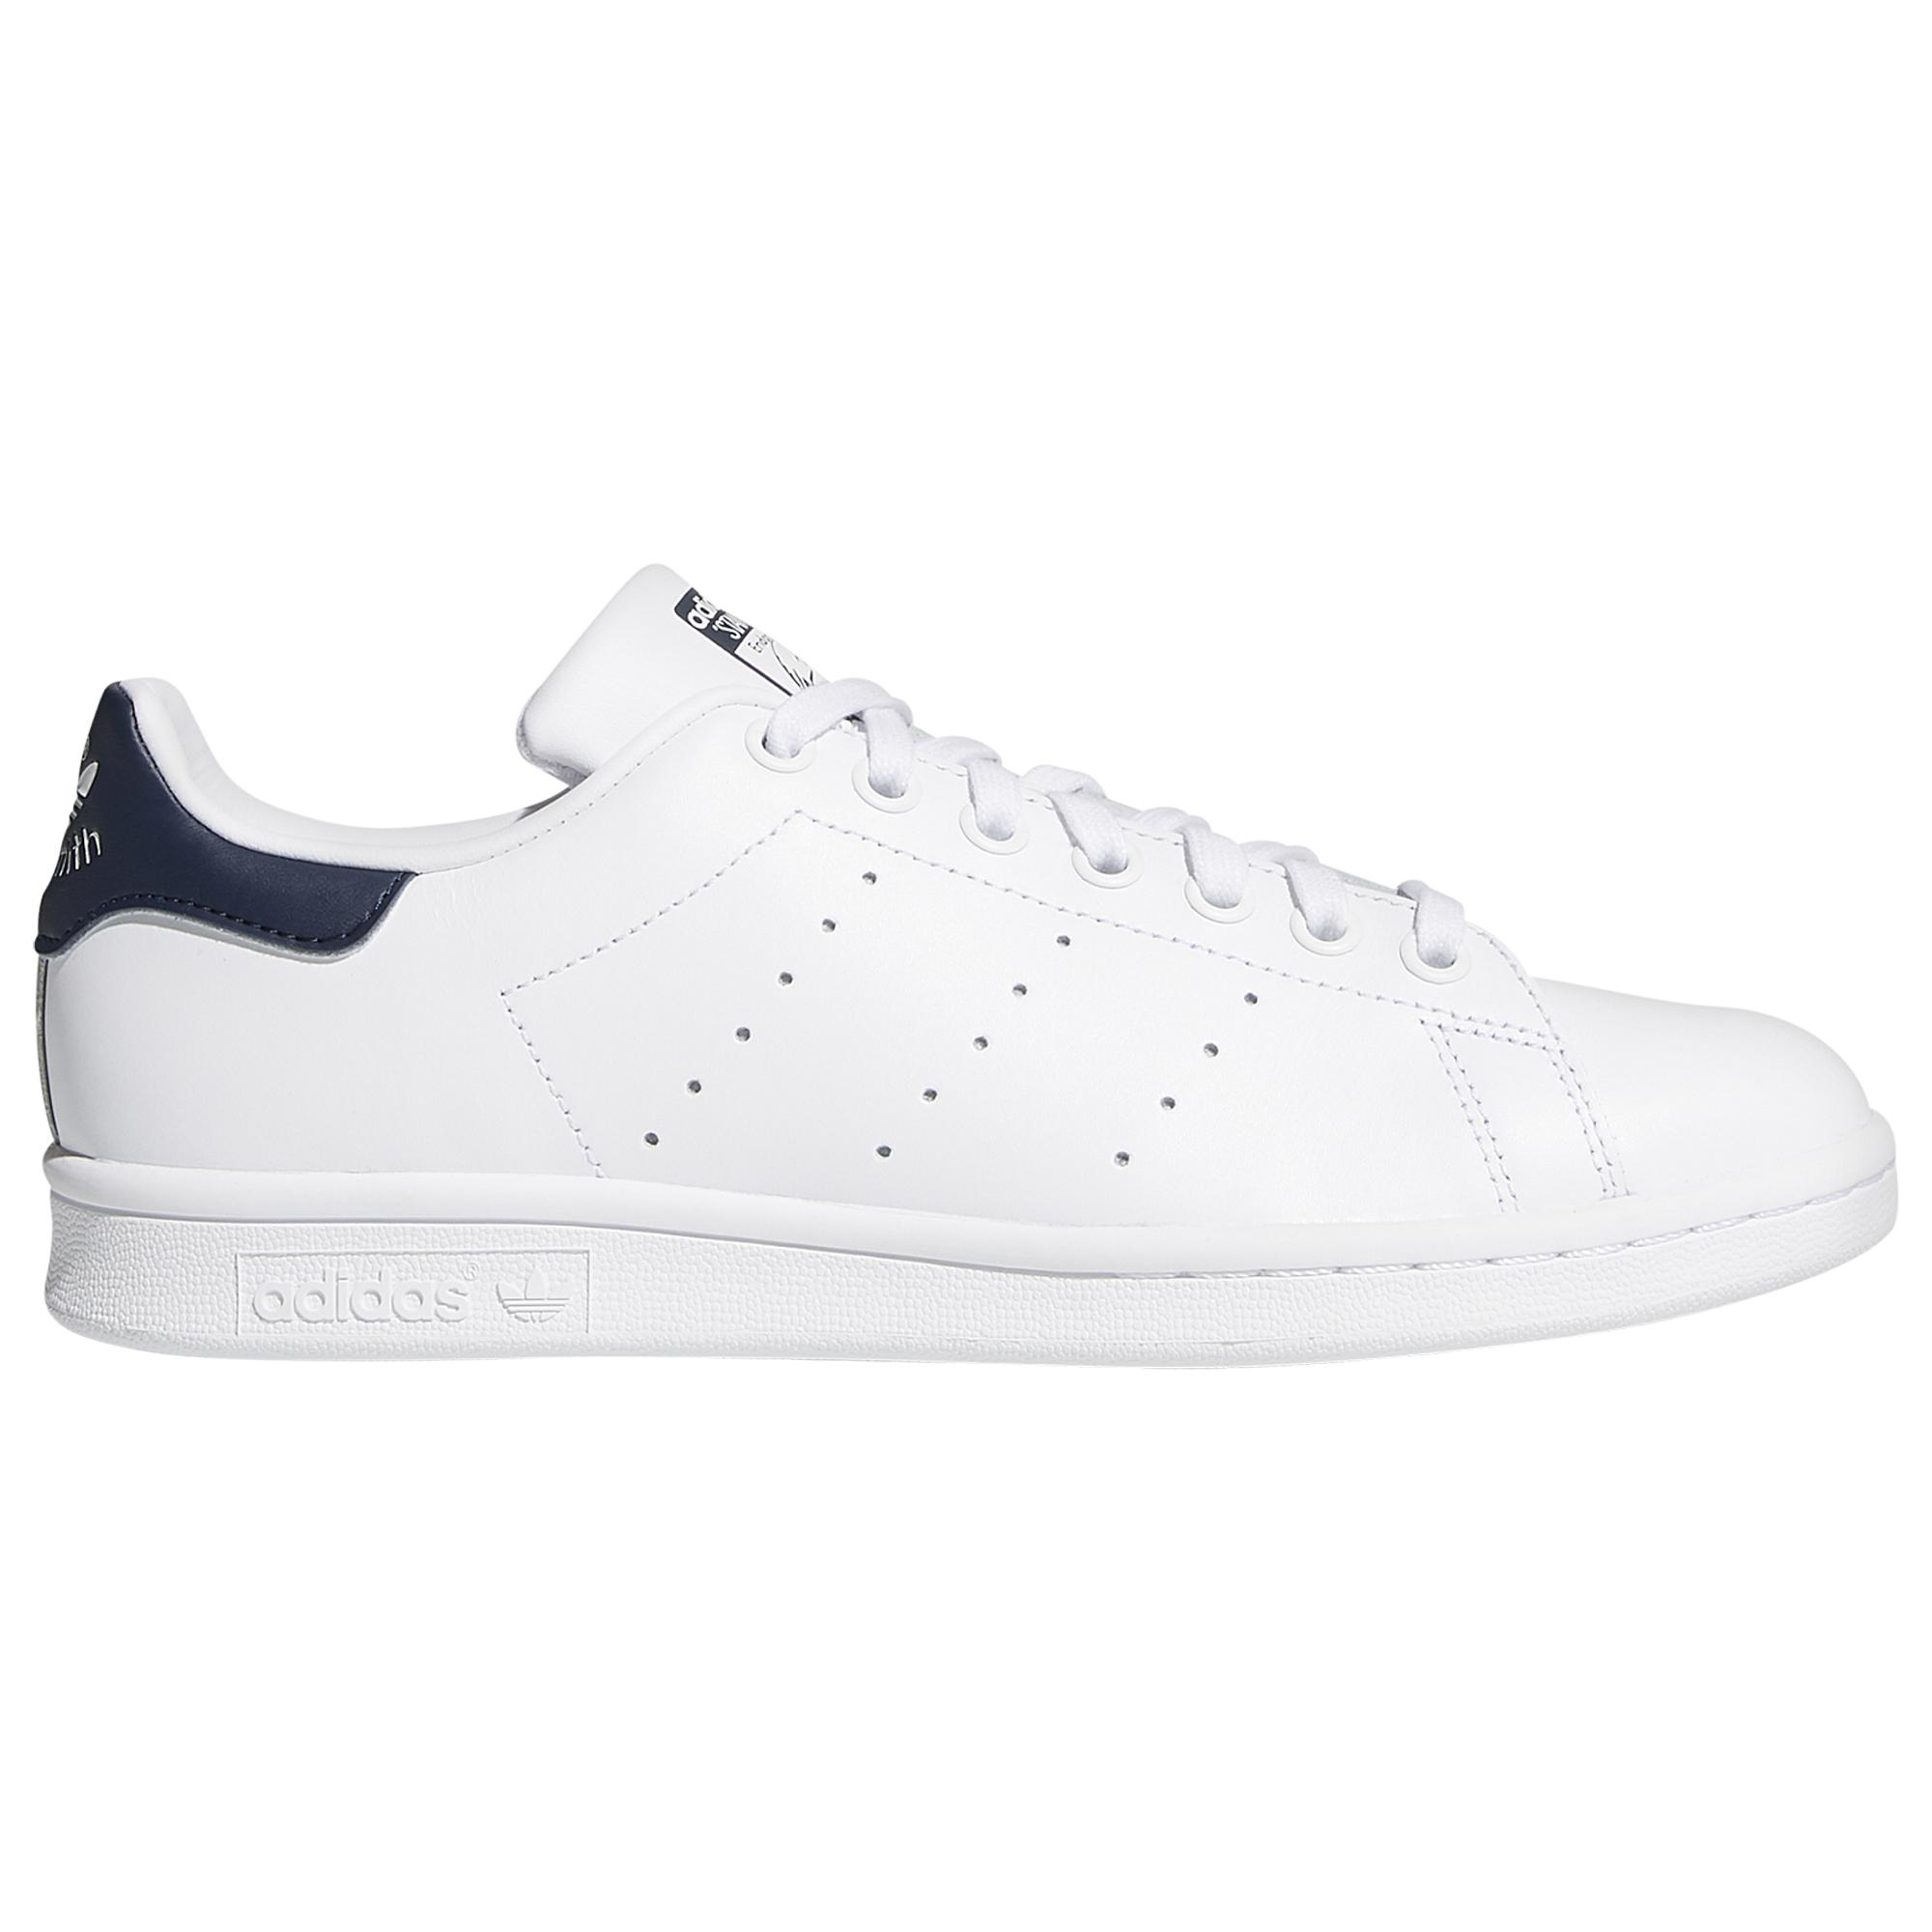 new styles de246 ae901 Adidas Originals - White Stan Smith Tennis Shoes for Men - Lyst